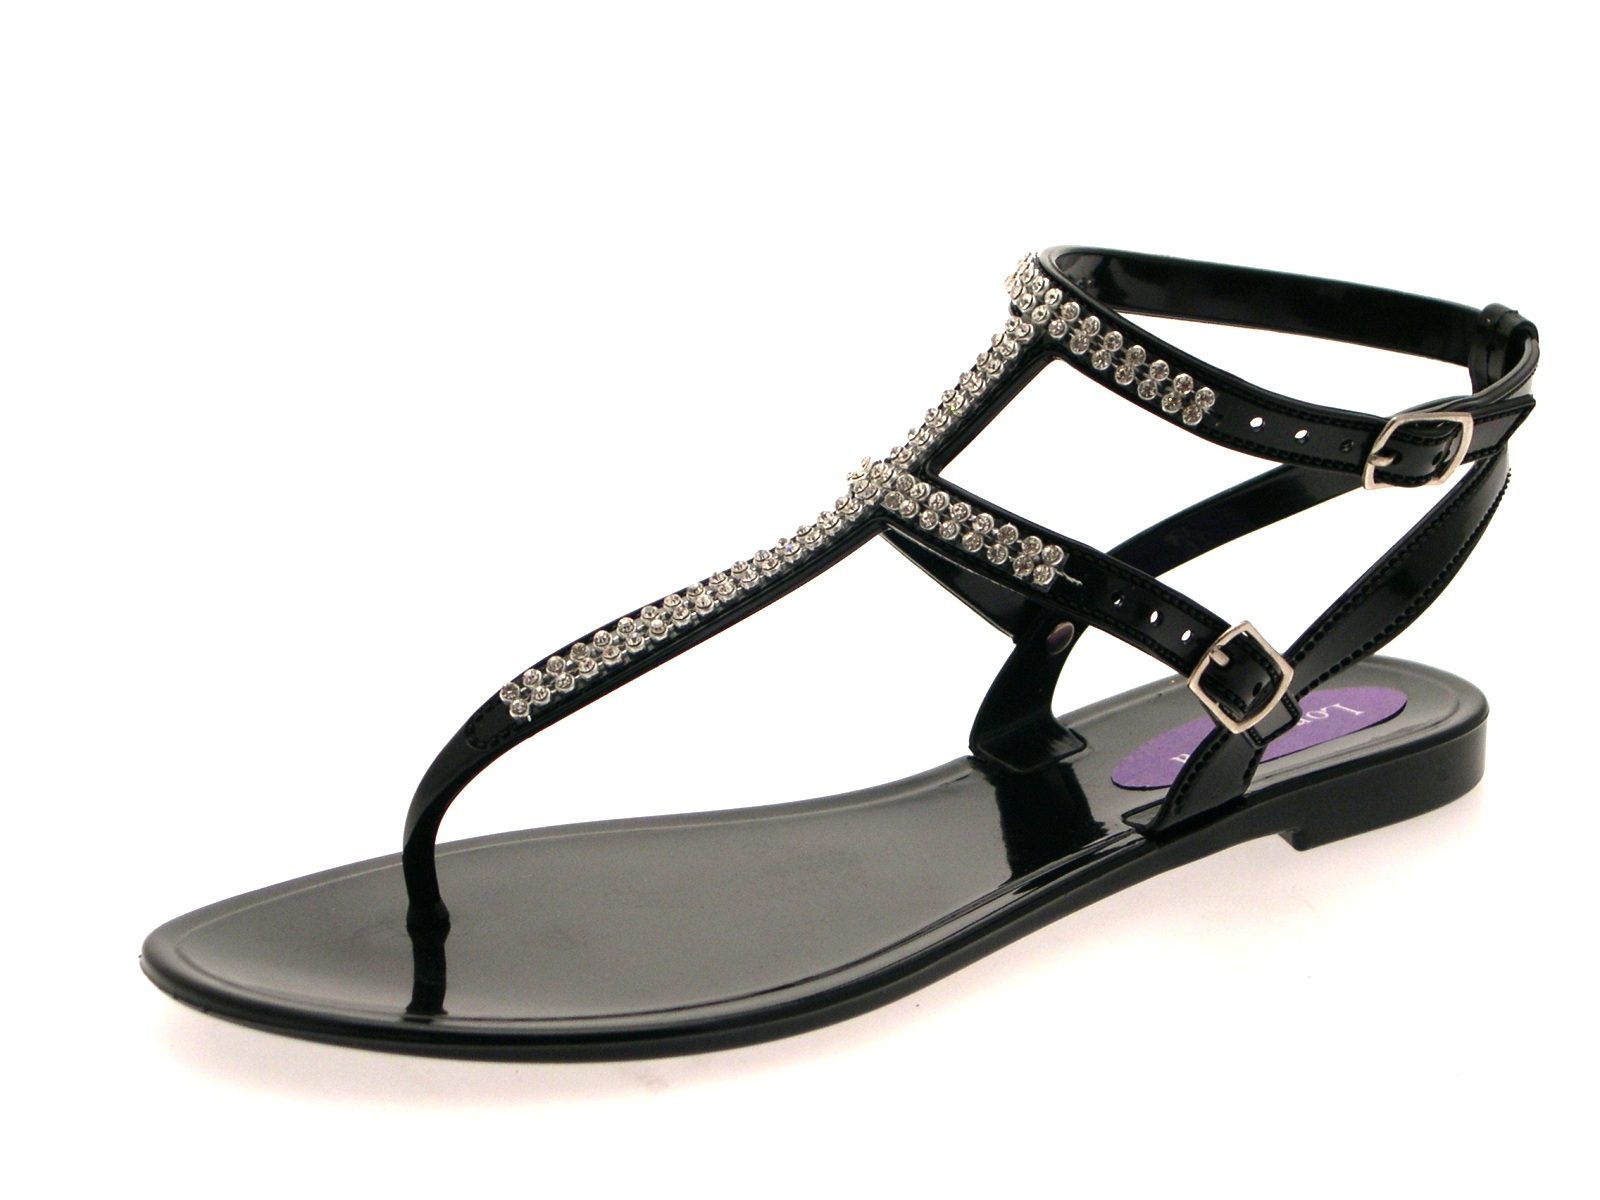 3402dca3b8e1 Womens Diamante Sandals Summer Flat Jelly Shoes Double Strap Ladies ...